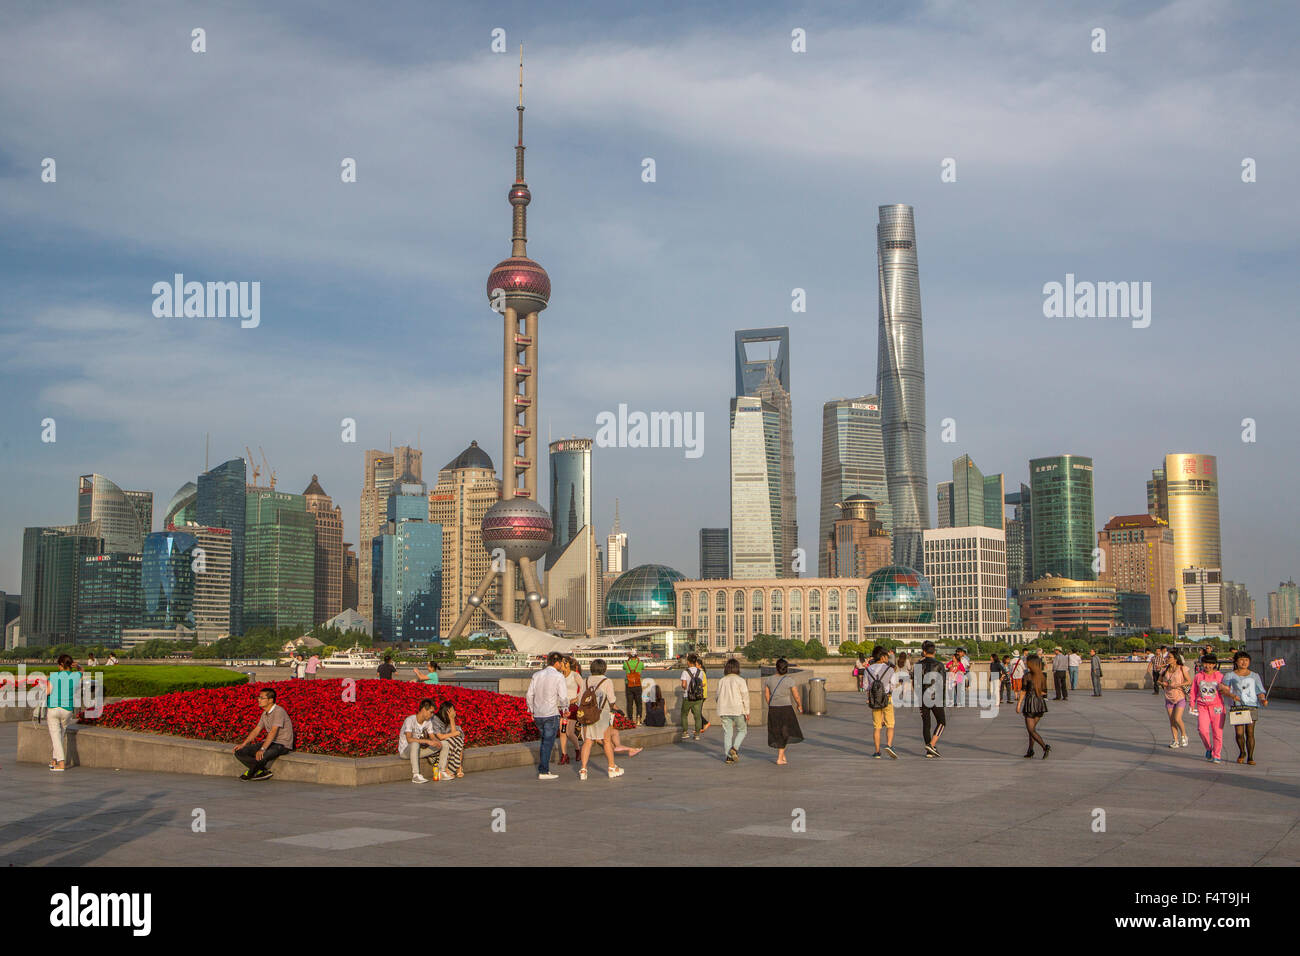 China, Shanghai City, The Bund, Oriental Pearl, World Financial Center and Shanghai Towers - Stock Image